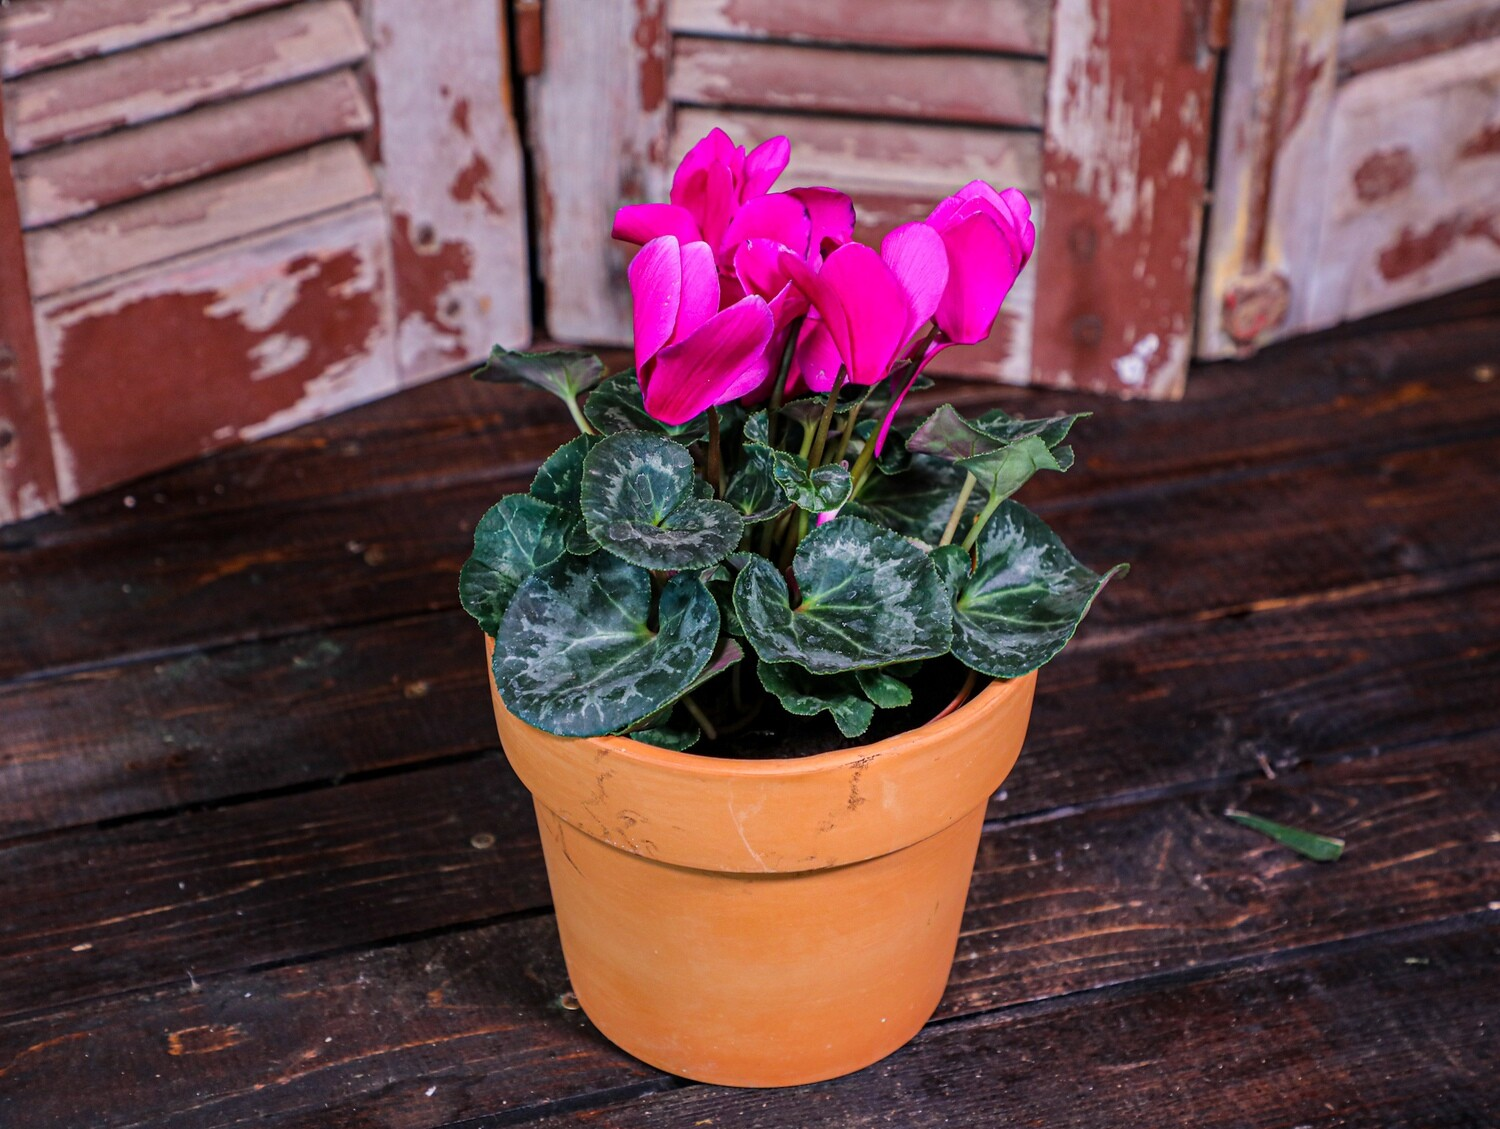 Cyclamen (Plant) - Nature by Marc Beyrouthy